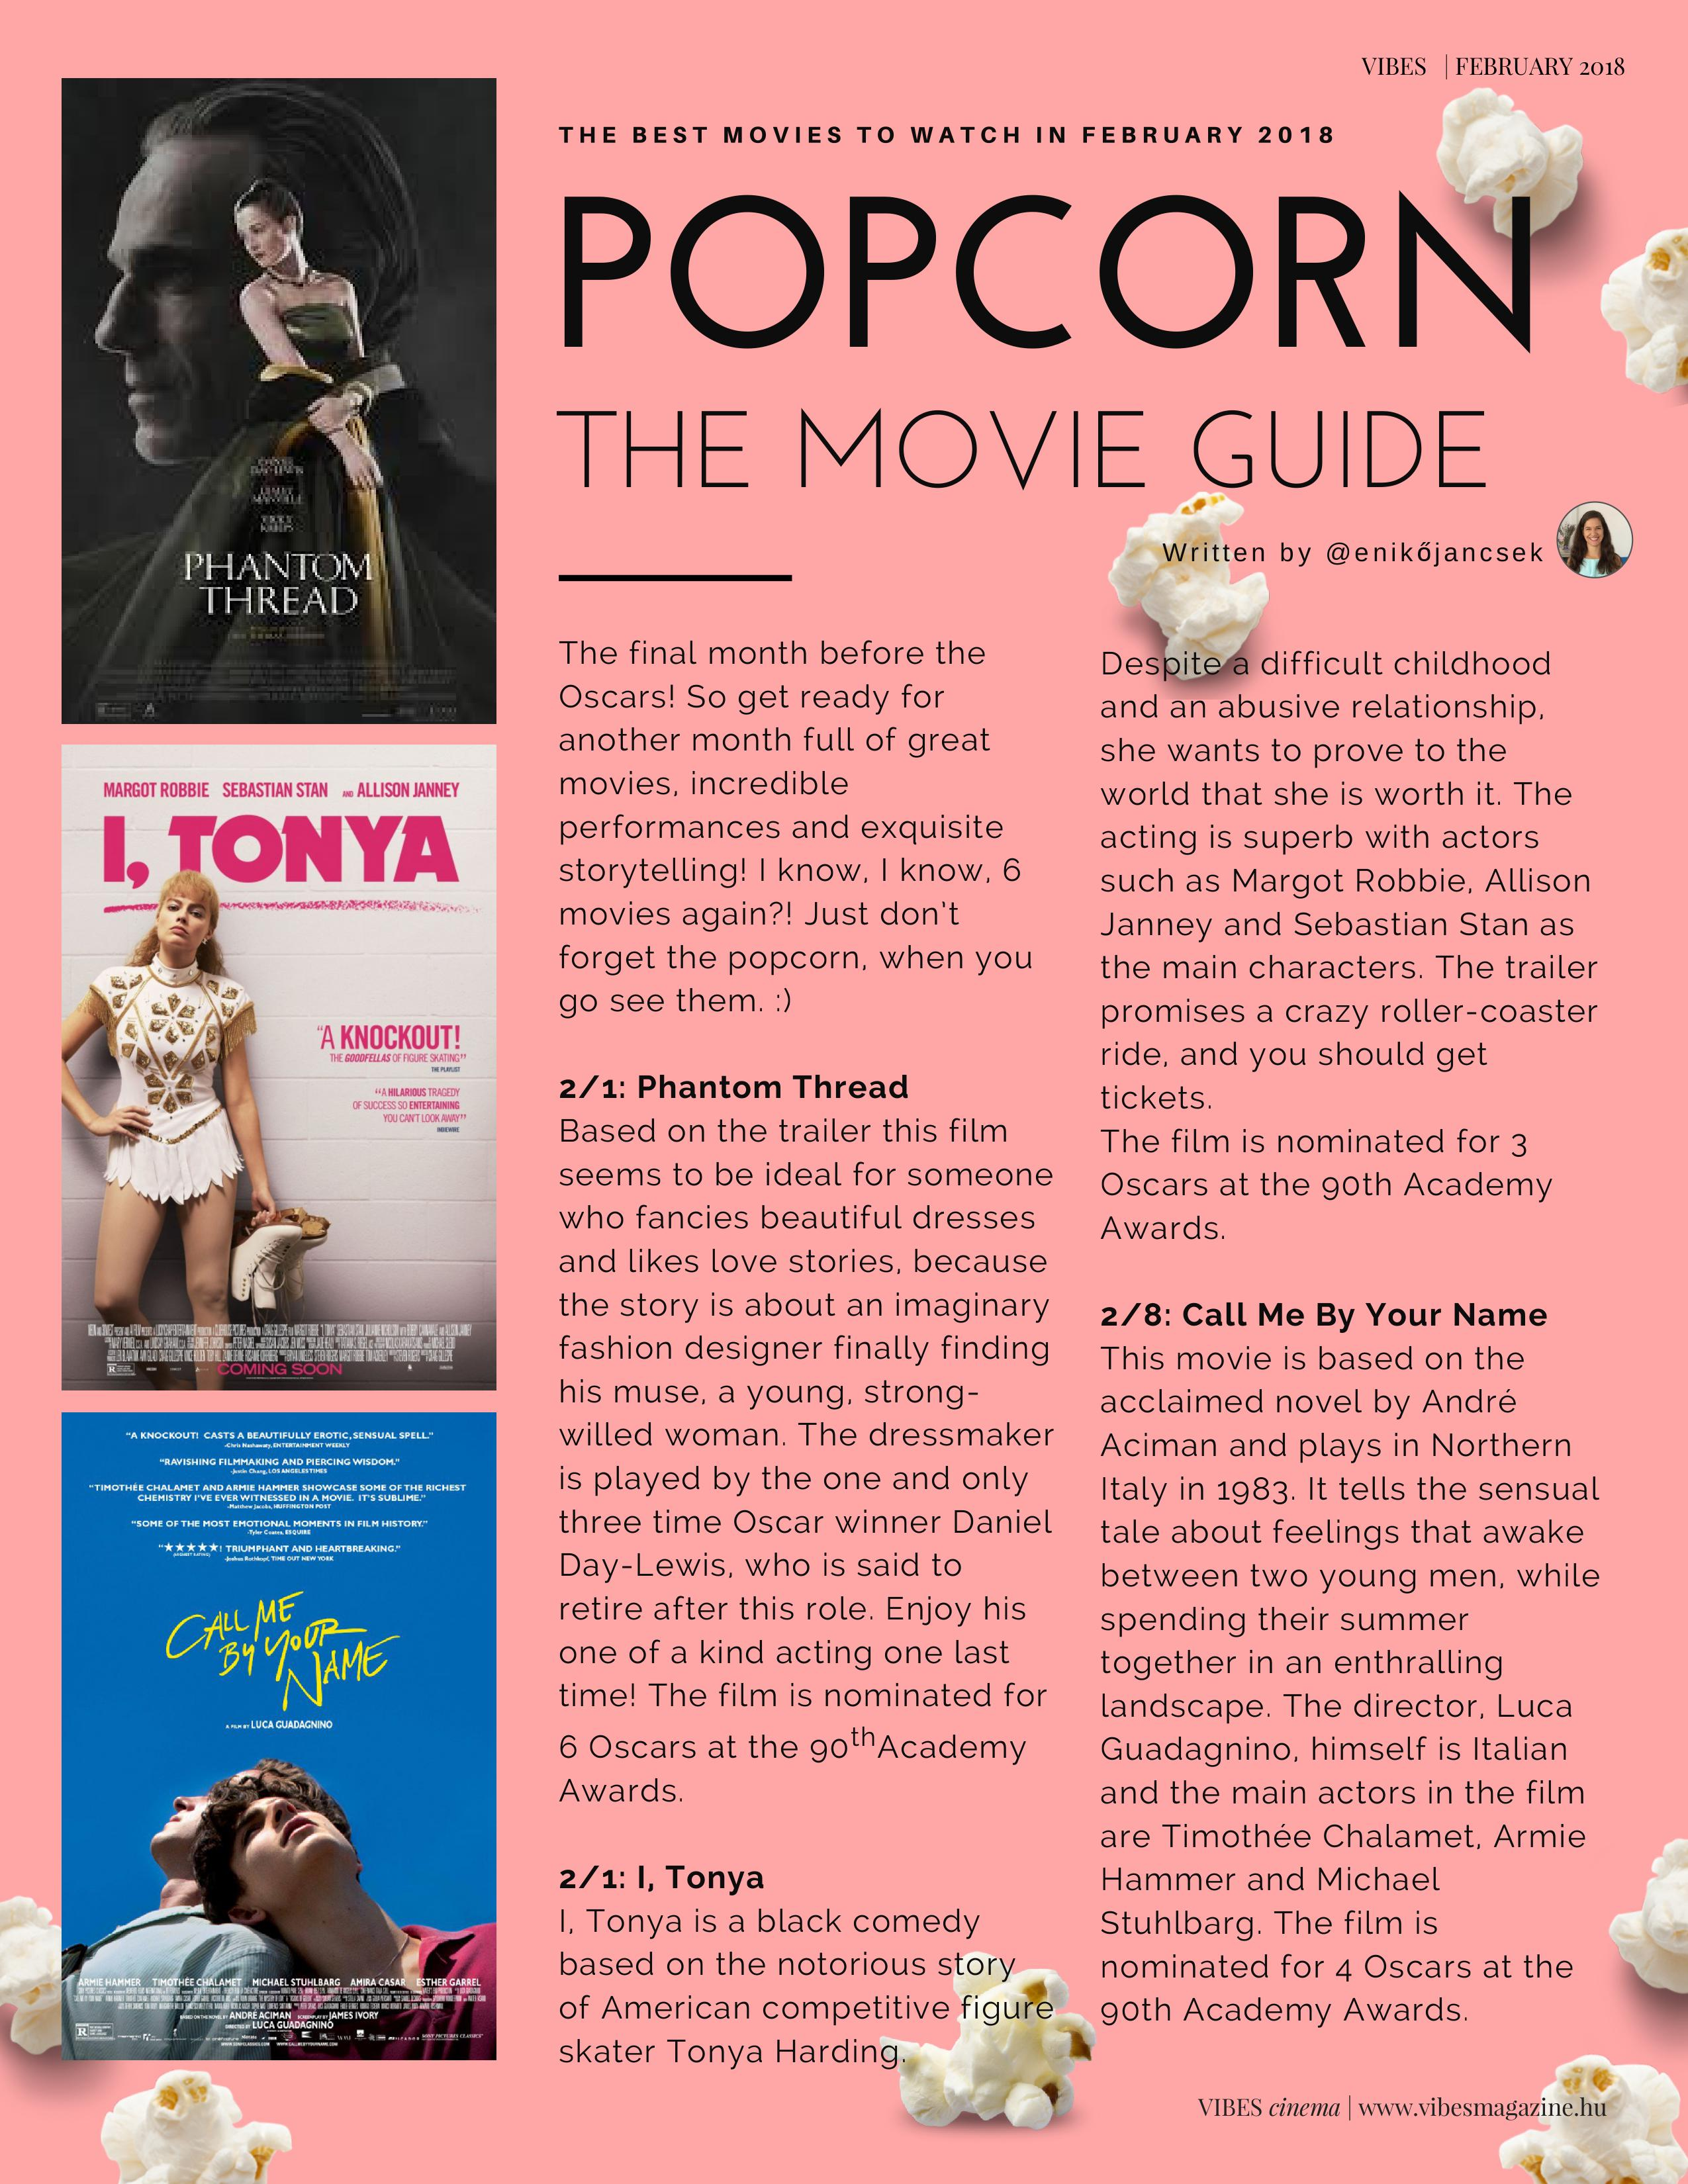 Popcorn -The Movie Guide -Vibes February 2018 (2)